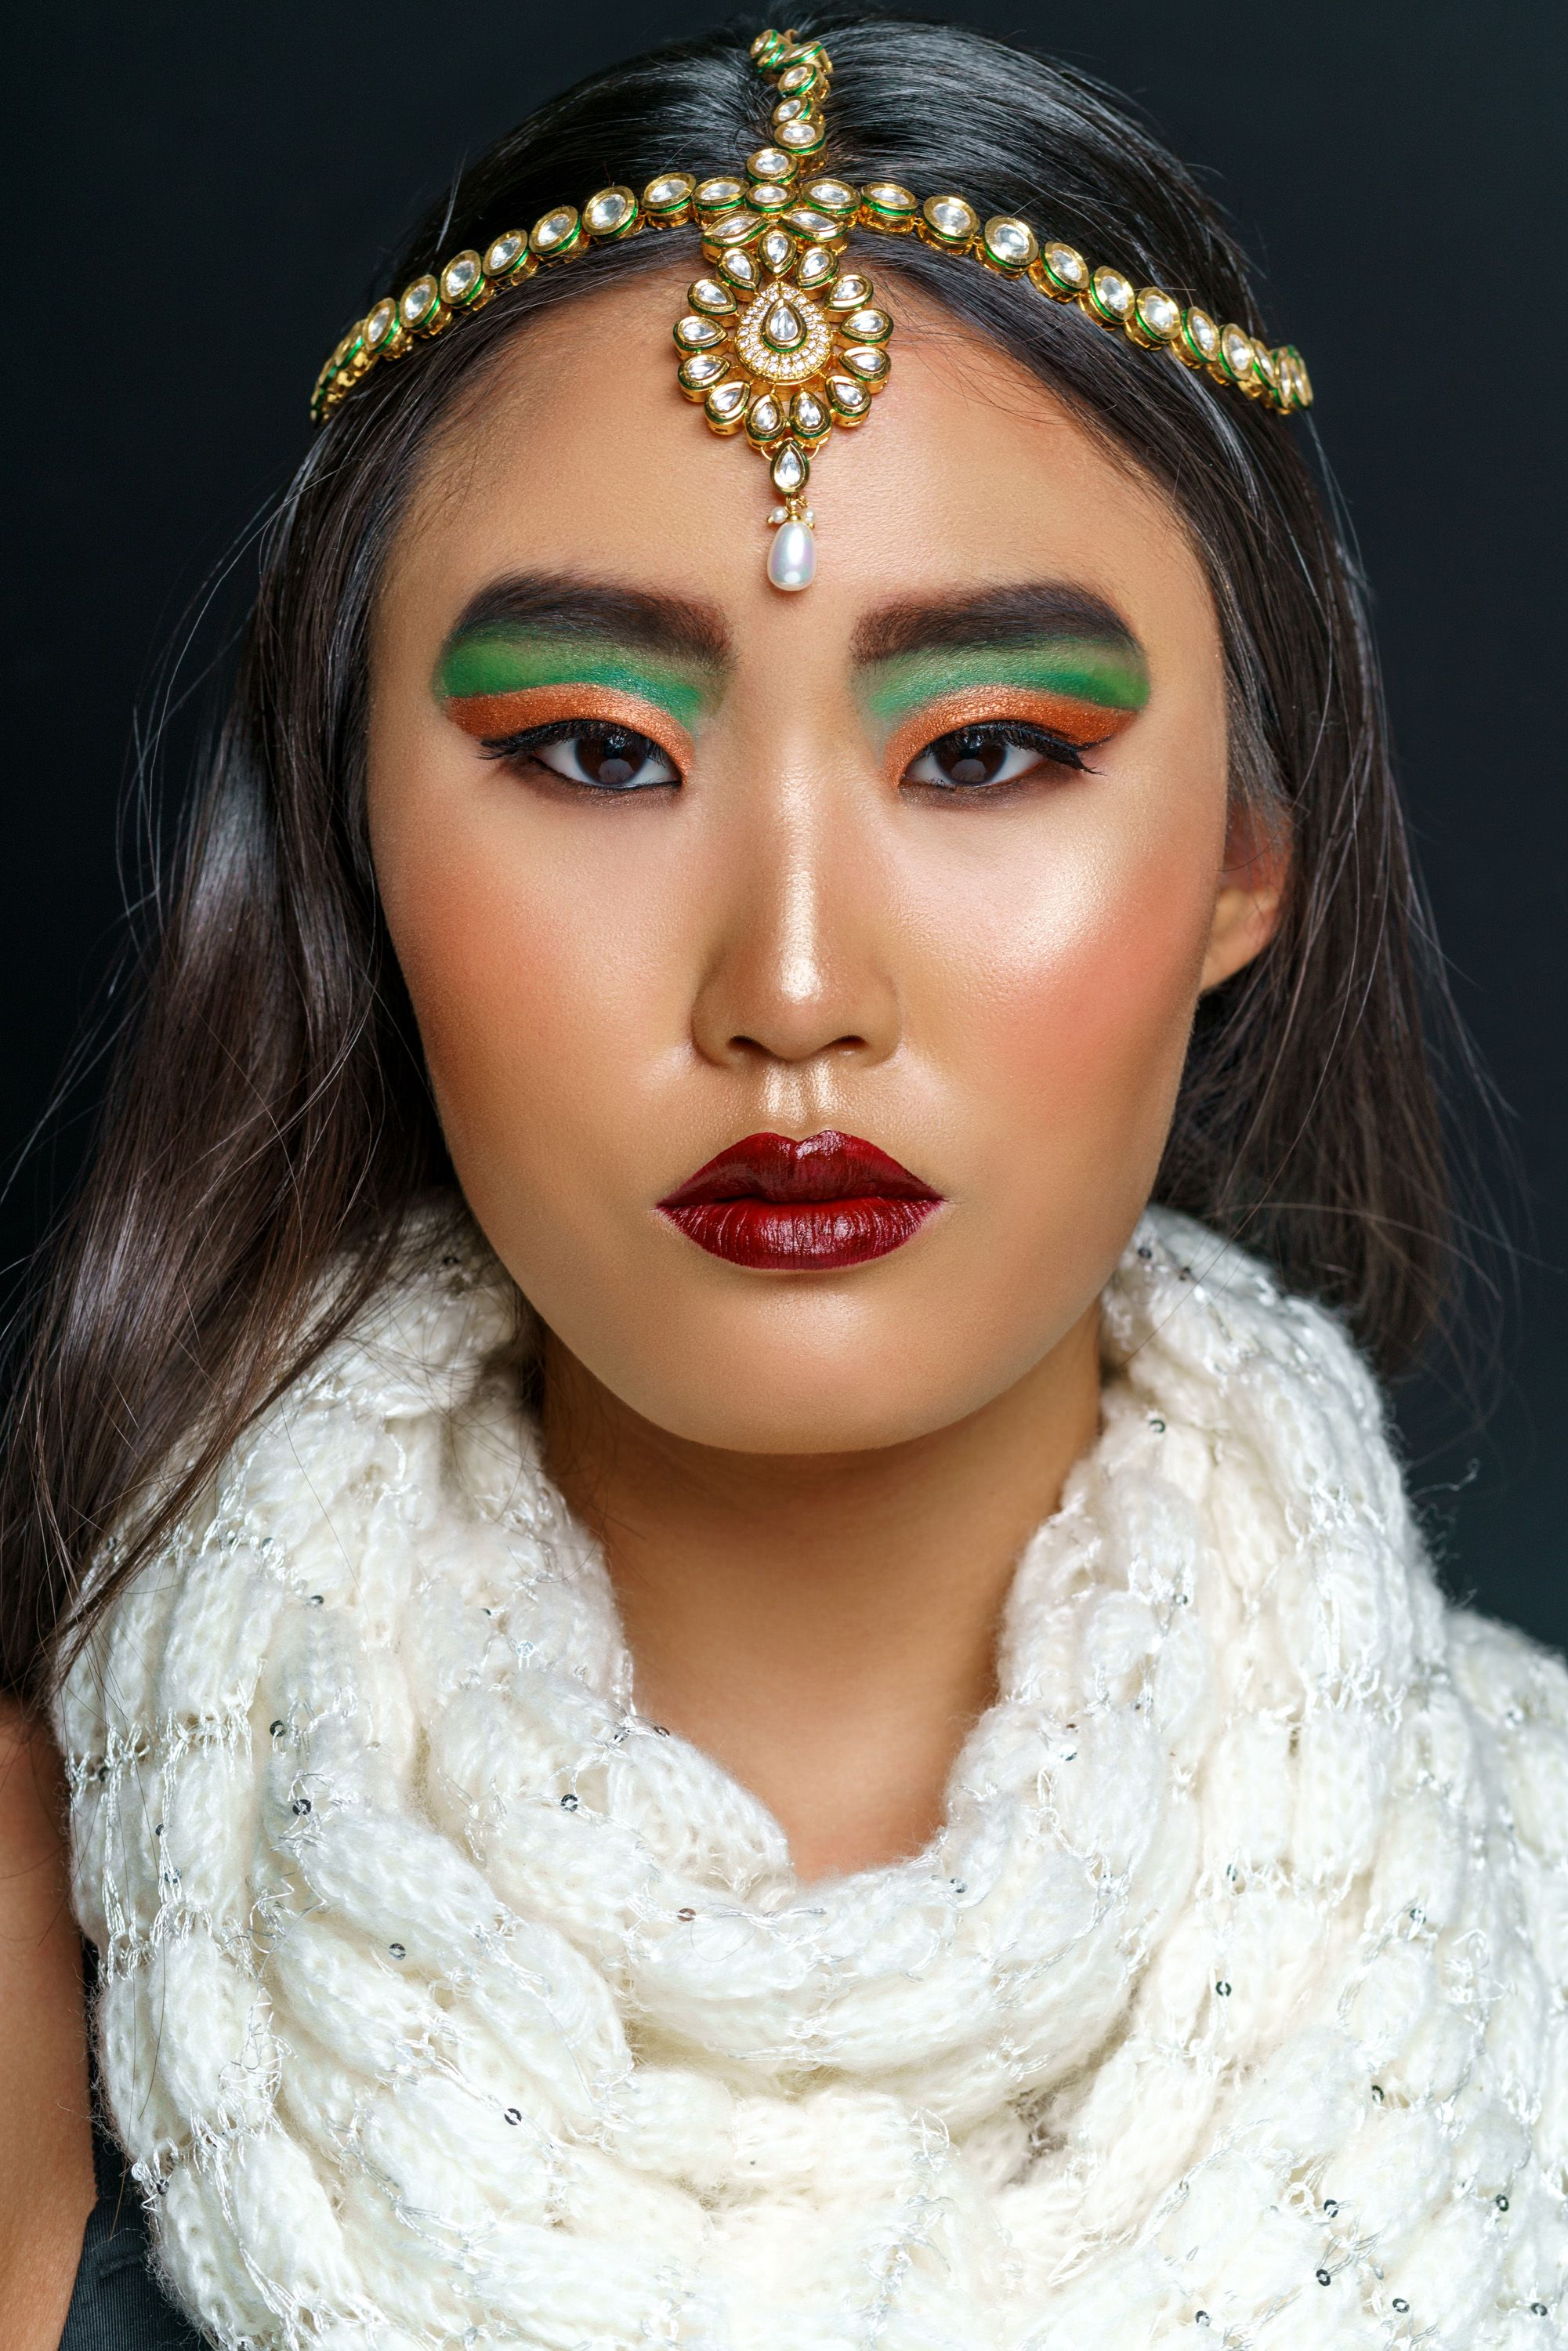 Makeup looks are a great way to express yourself. There